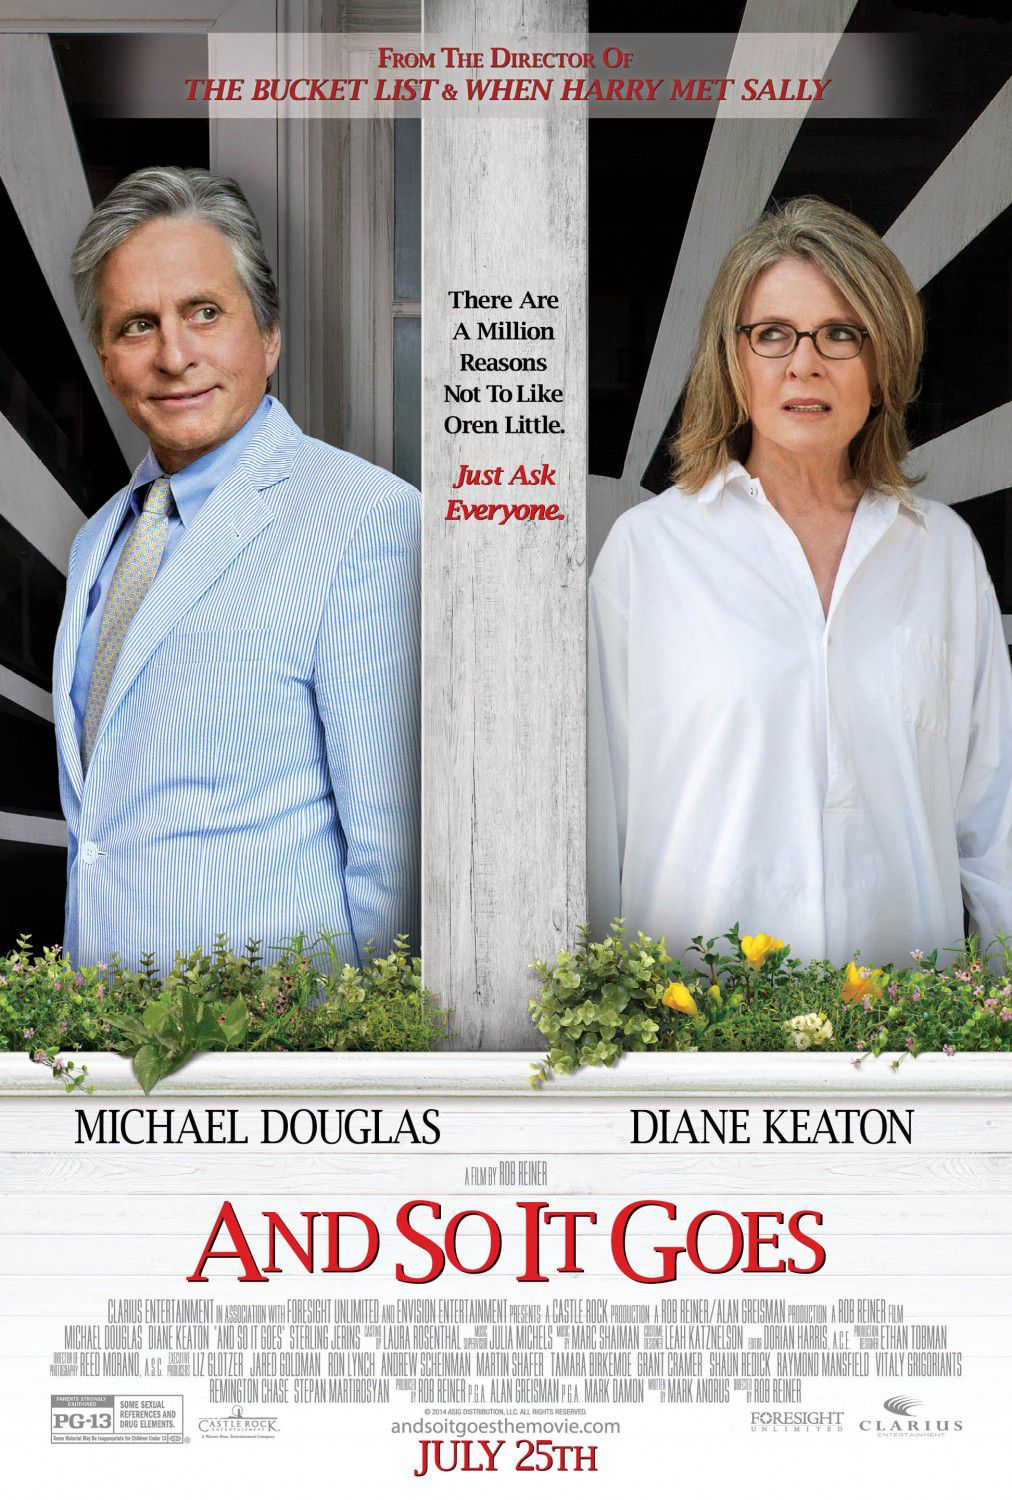 And so it goes - Romance - Diane Keaton - Michael Douglas - film poster